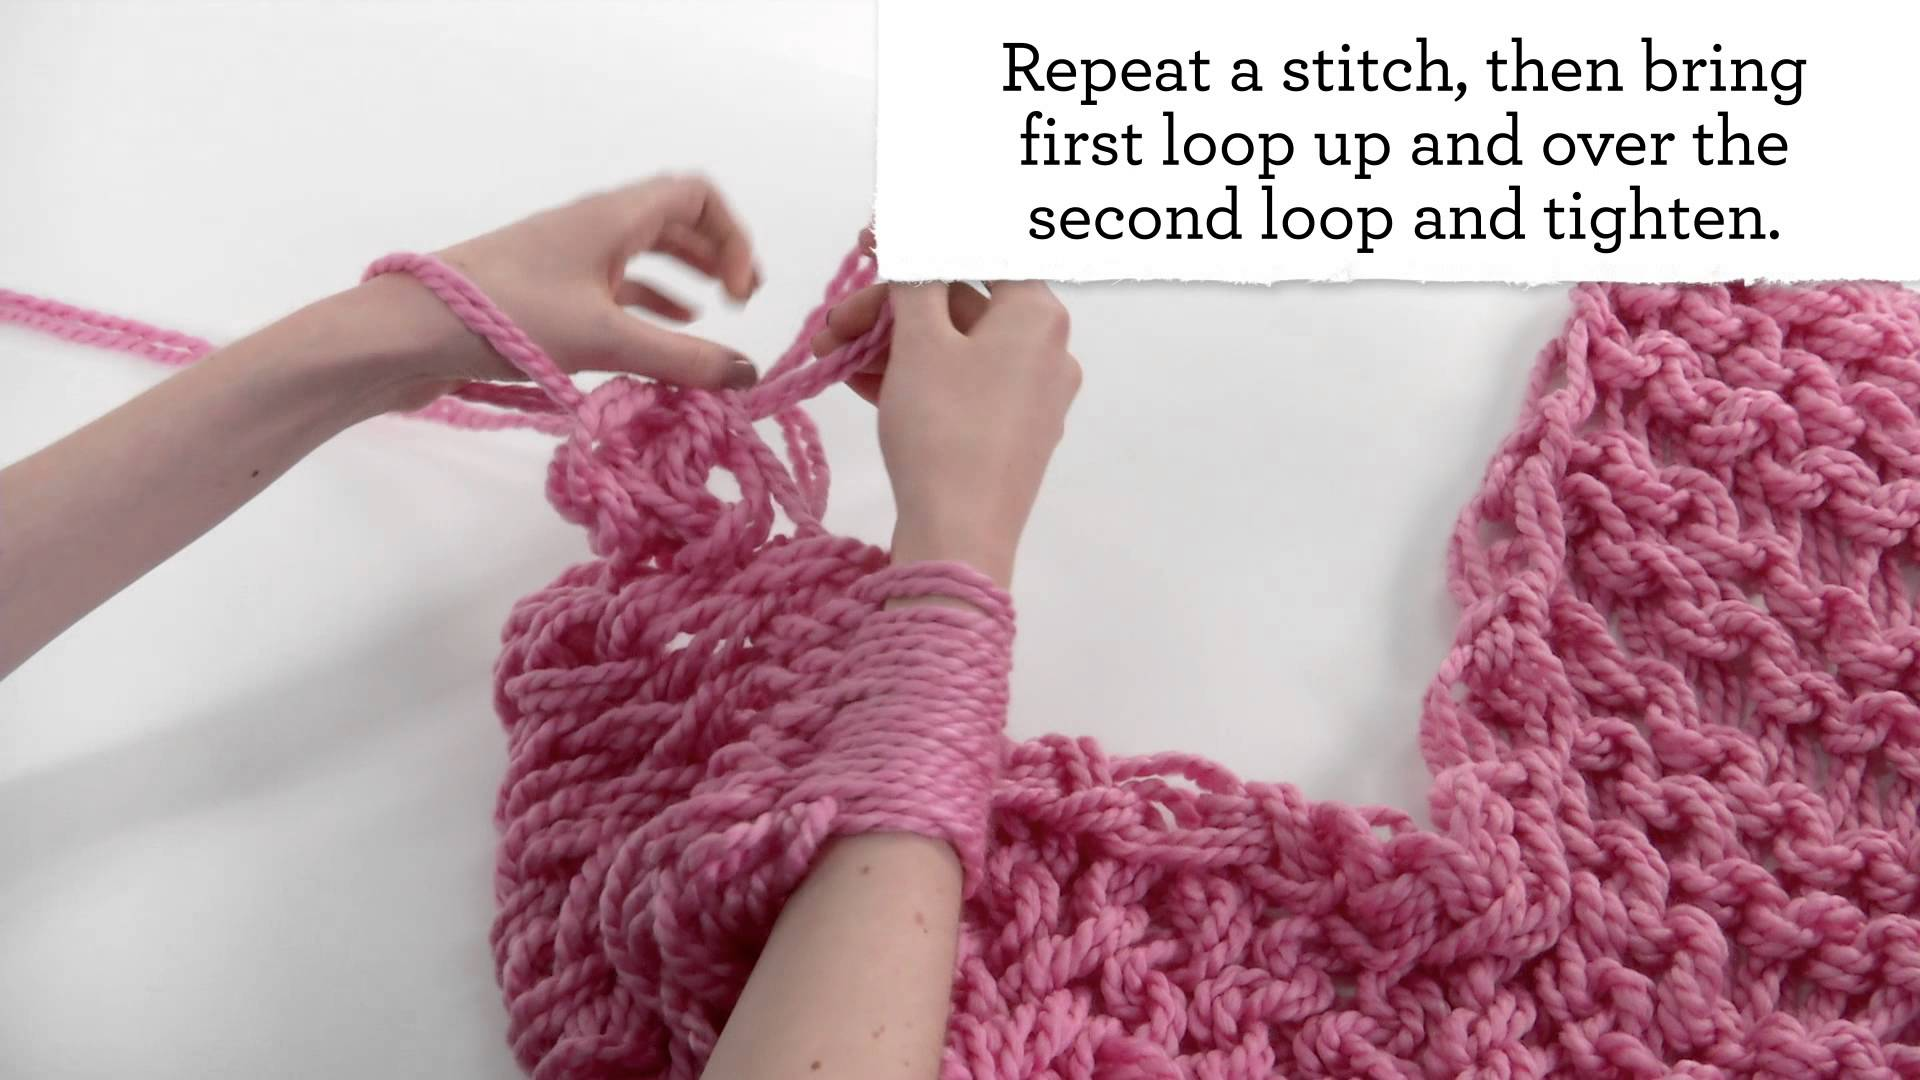 Knitting A Blanket With Arms : Arm knitting scarf patterns a